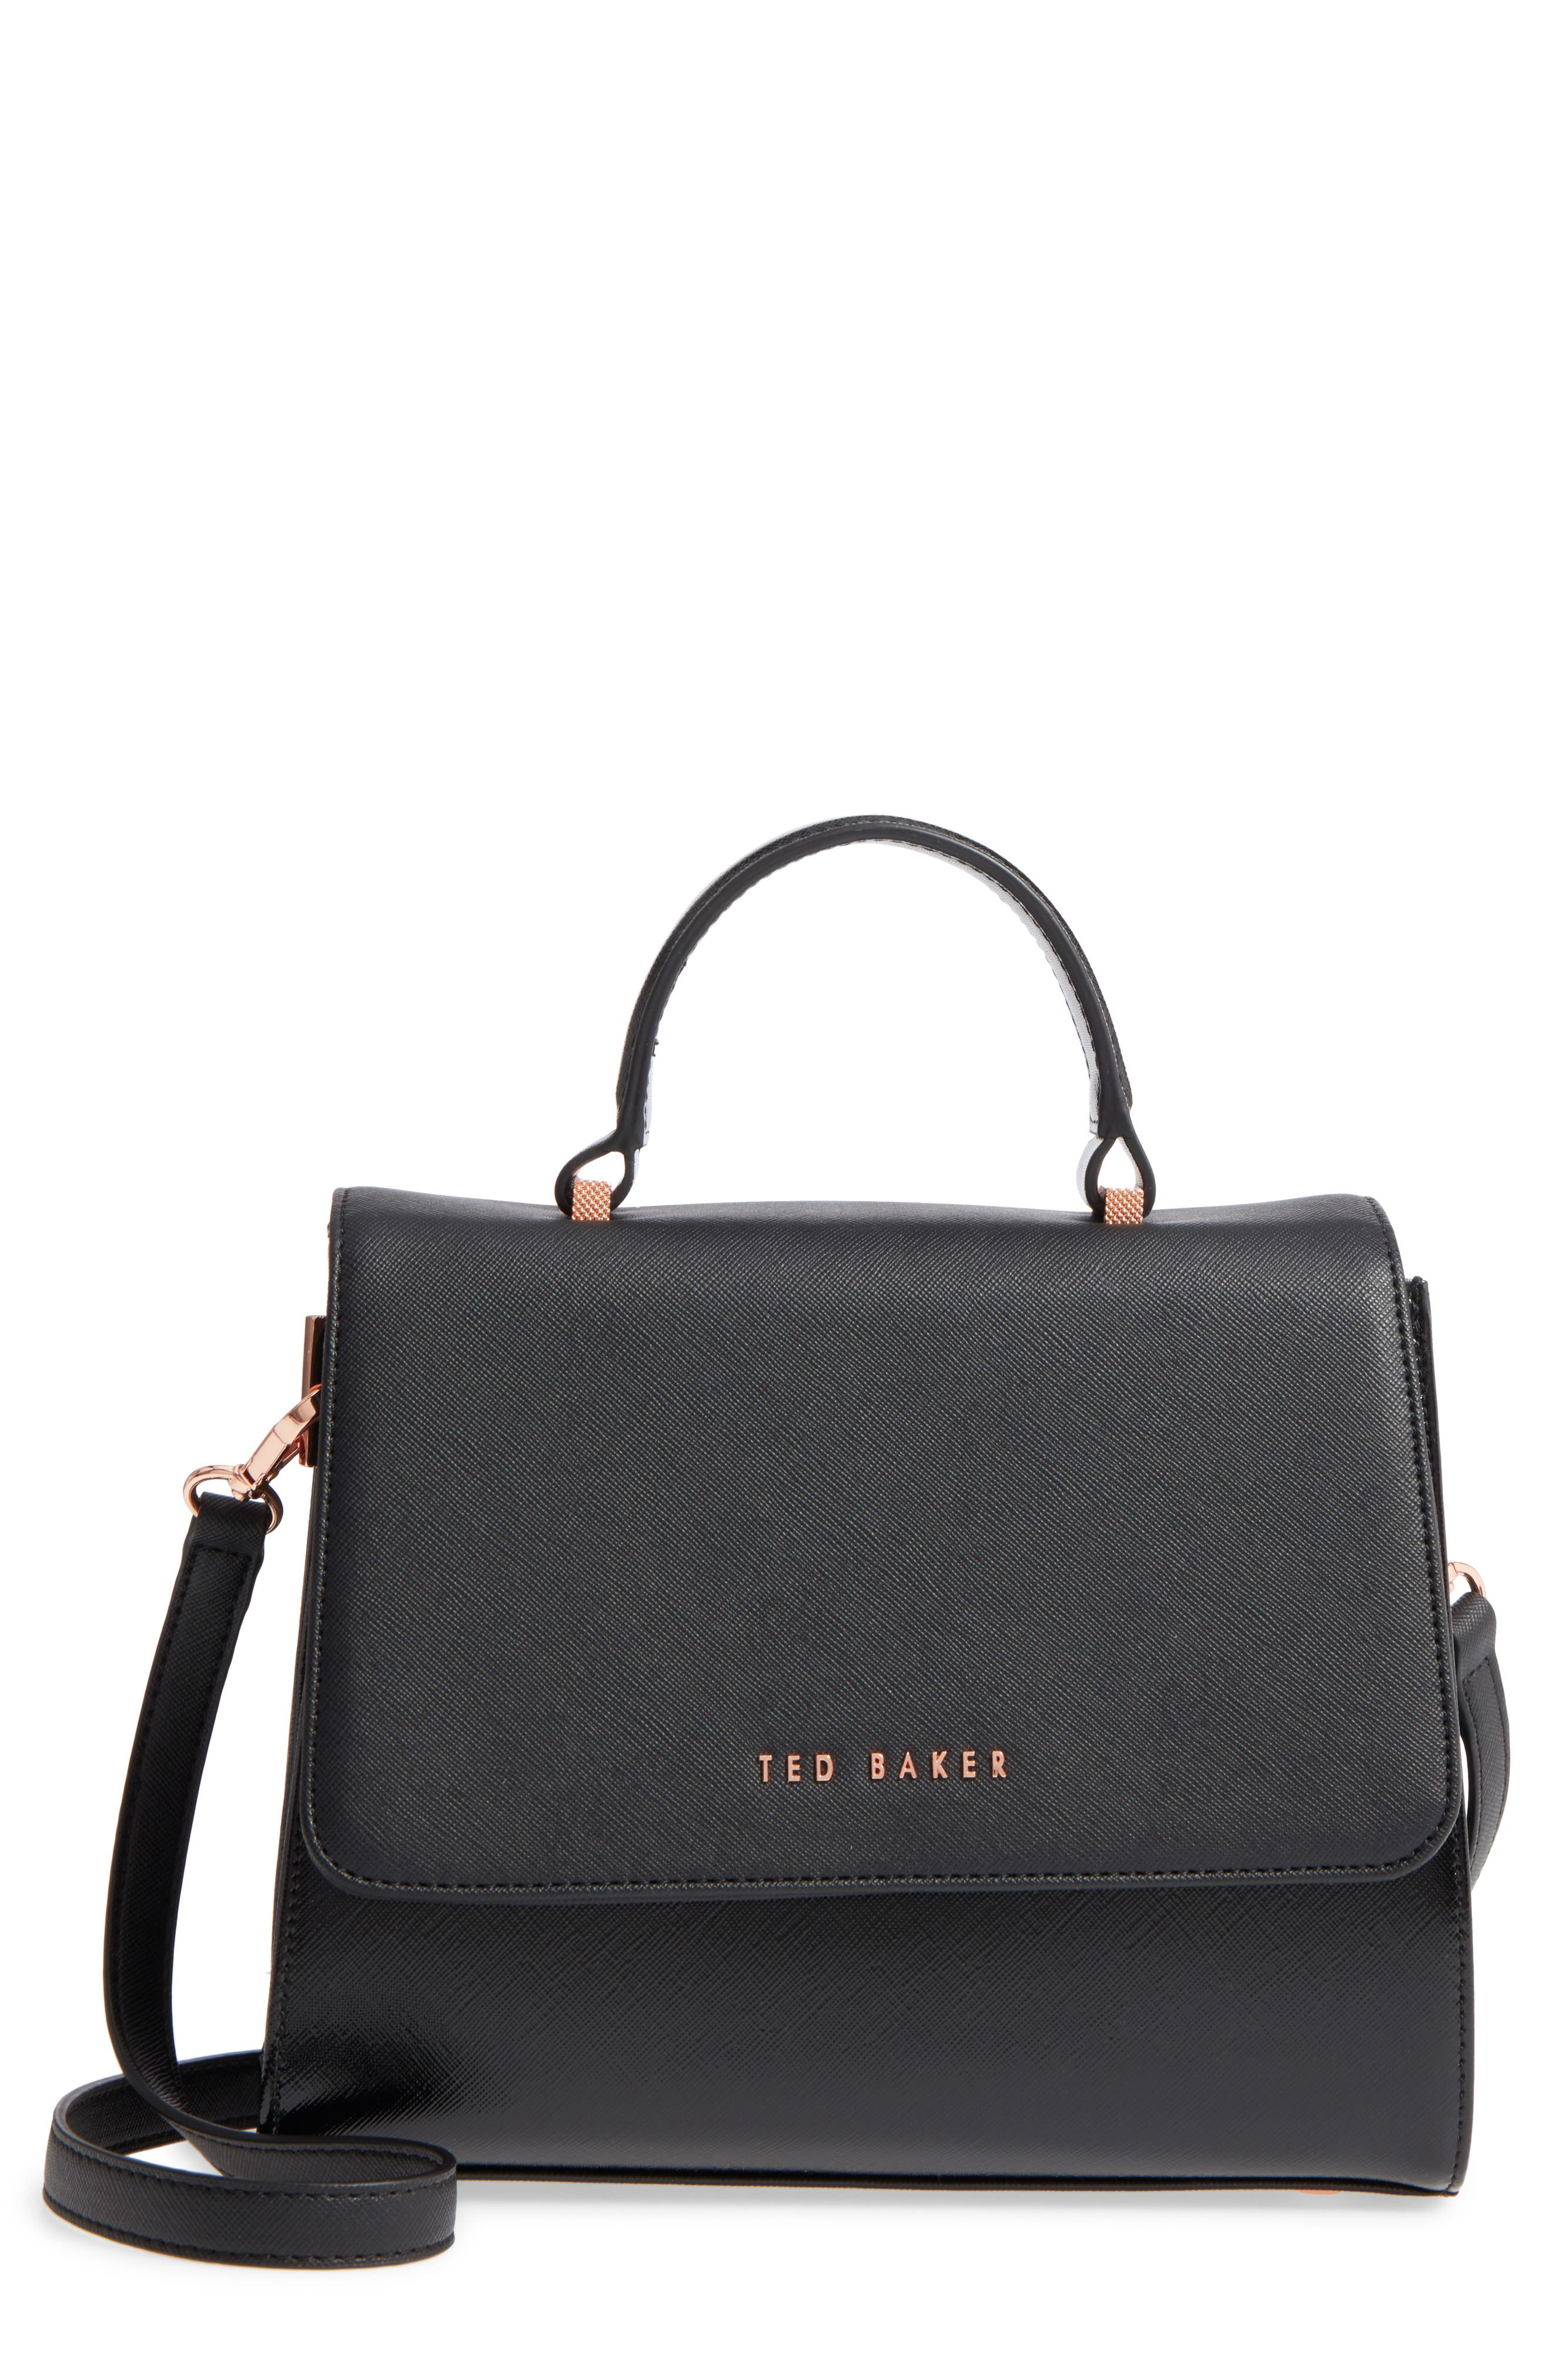 Ted Baker London Small Hilaryy Faux Leather Satchel